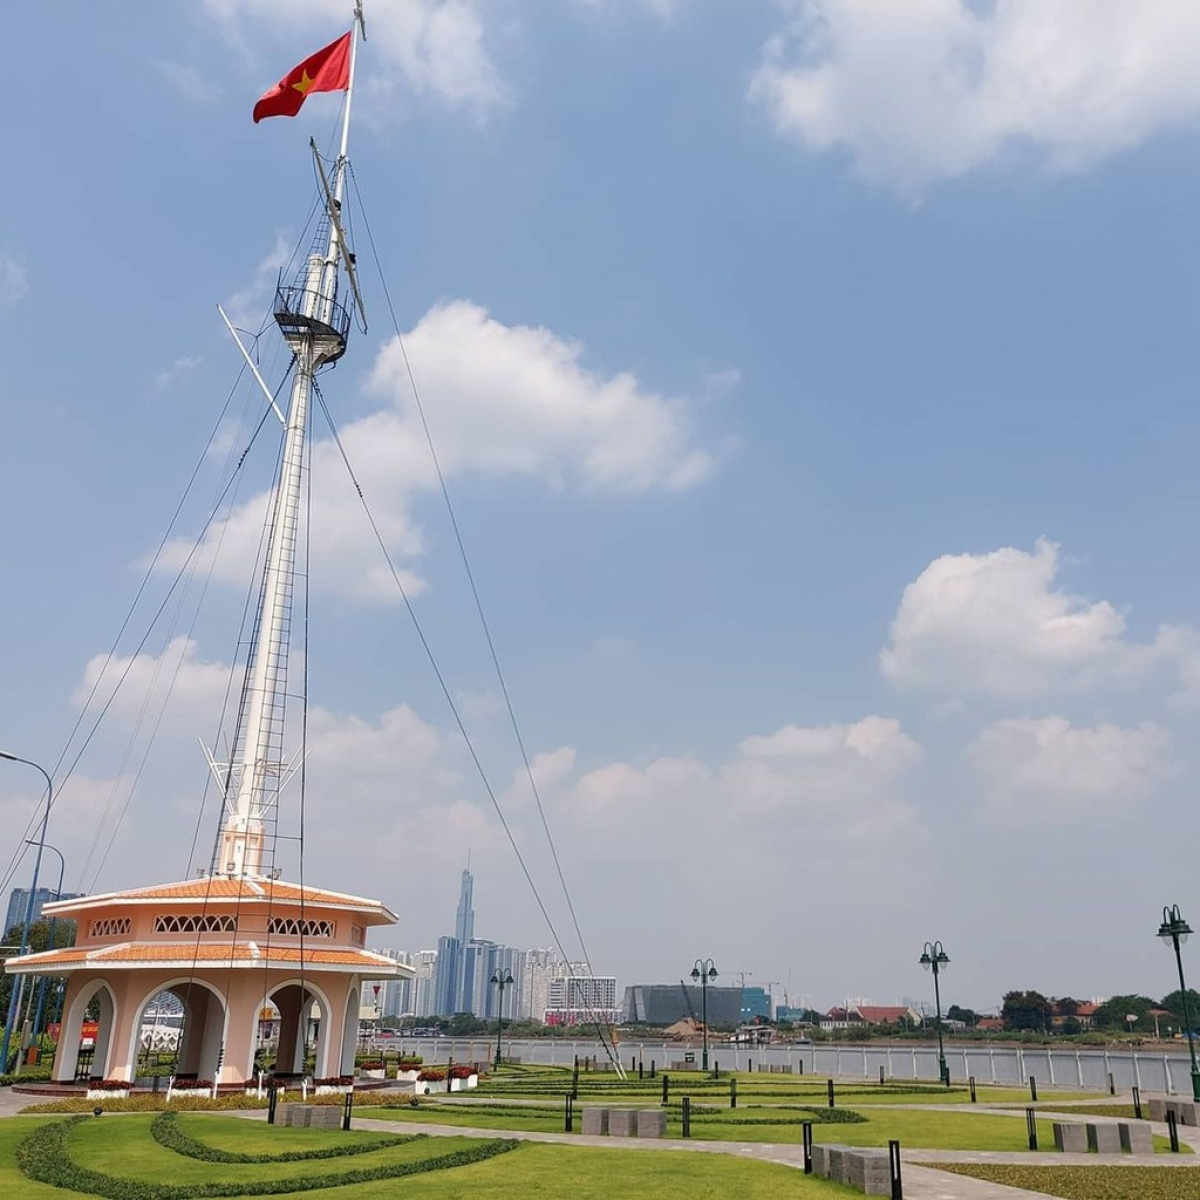 Thu Ngu Flag Tower is situated in District 1 of Ho Chi Minh City. Originally built 150 years ago, the landmark has recently been renovated in an effort to turn it into a prominent tourist attraction. (Photo: James Clark)